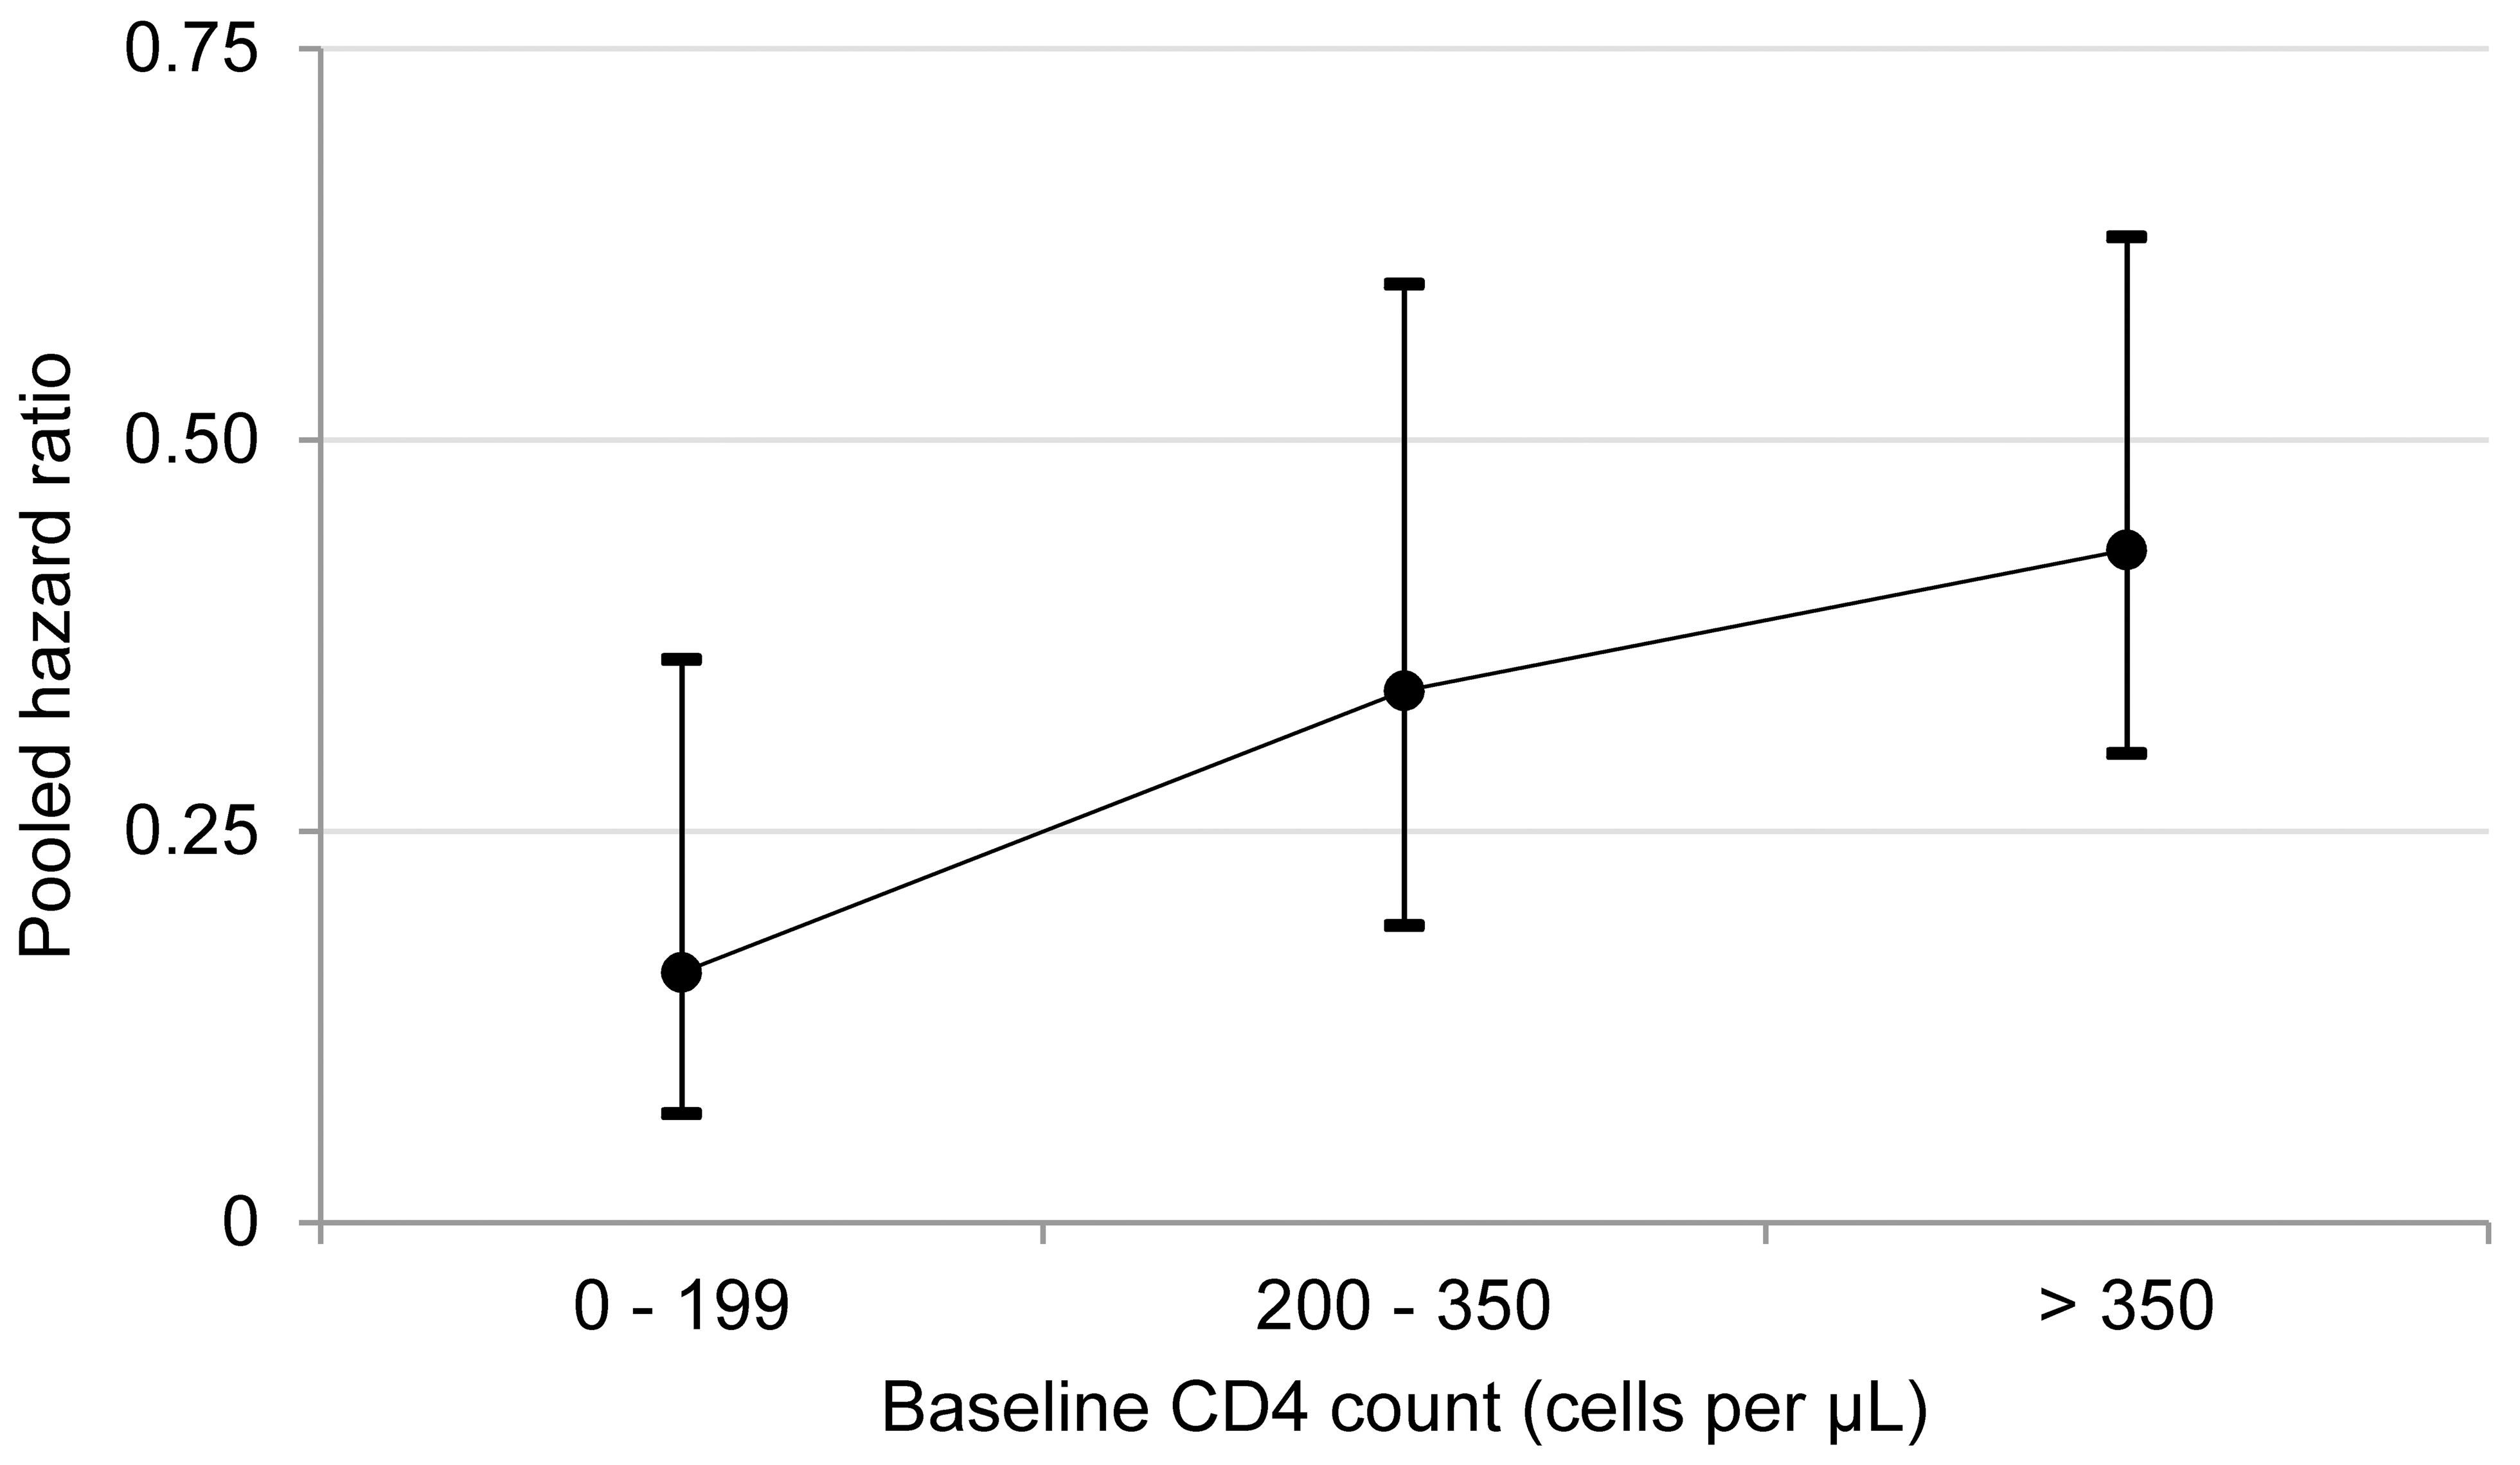 Antiretroviral therapy use and pooled hazard ratios of tuberculosis by baseline CD4 count.